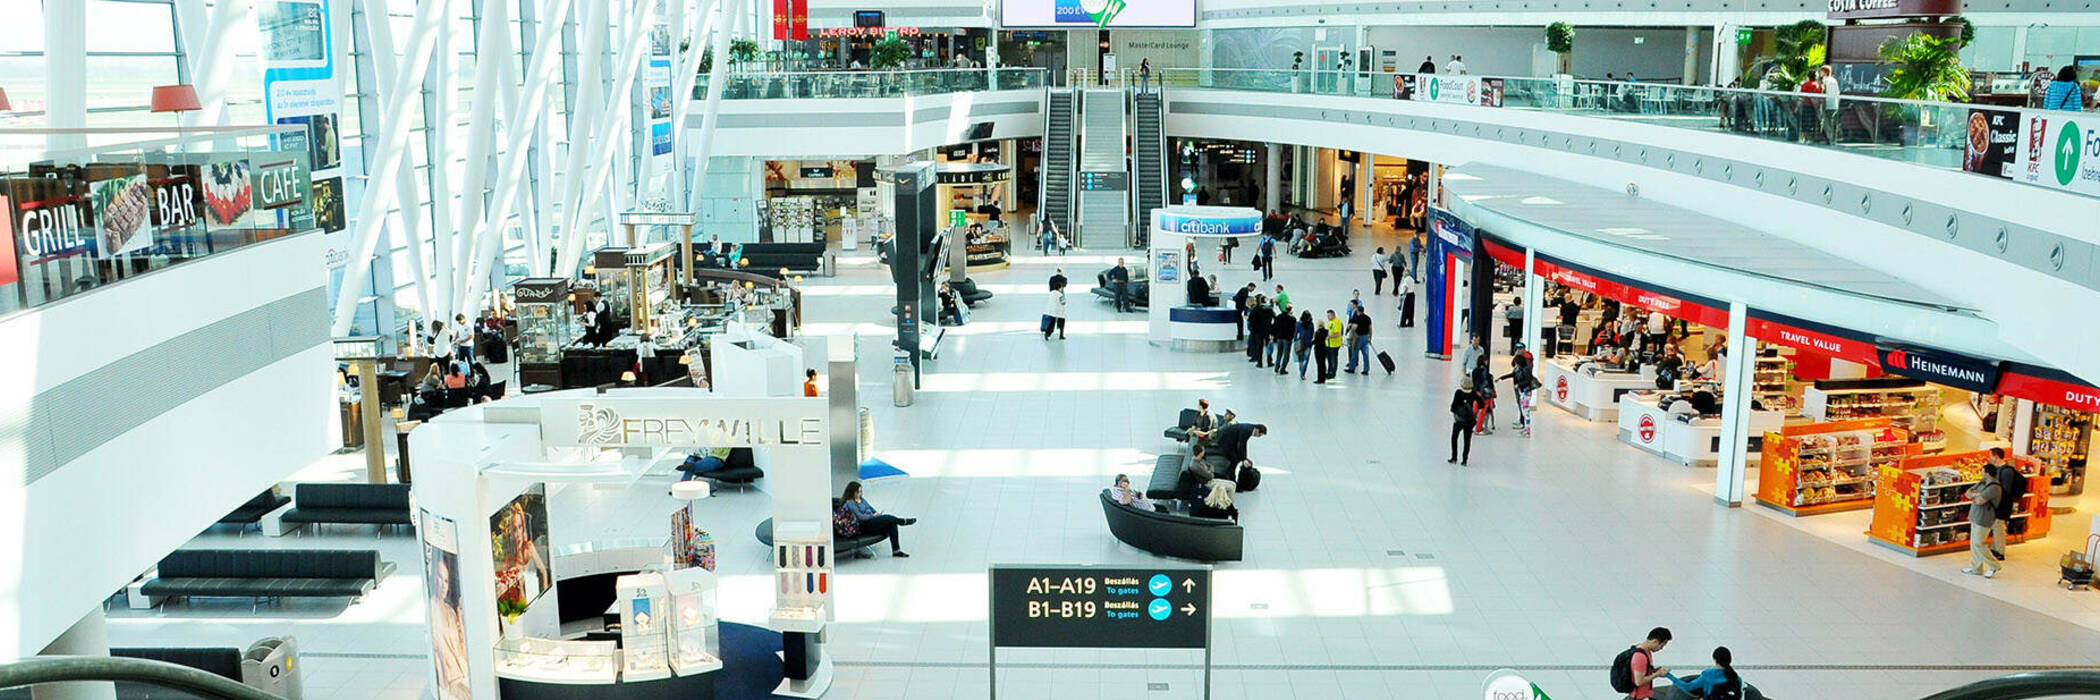 Airport with duty-free store.